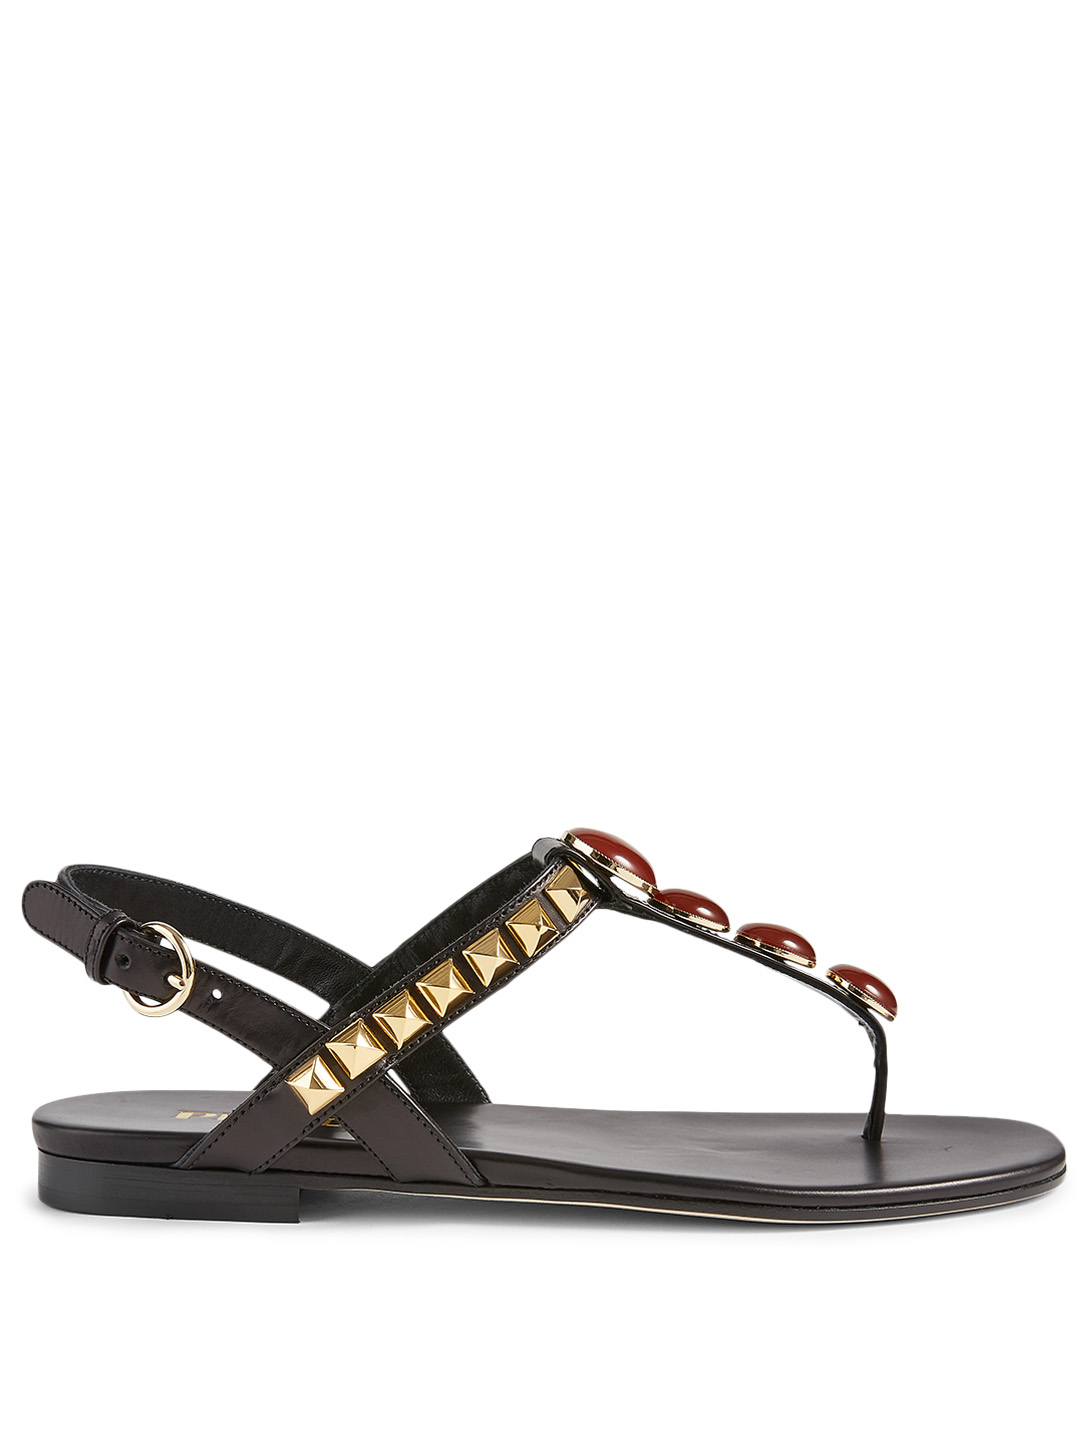 PRADA Studded Leather Thong Sandals With Jewels Women's Black